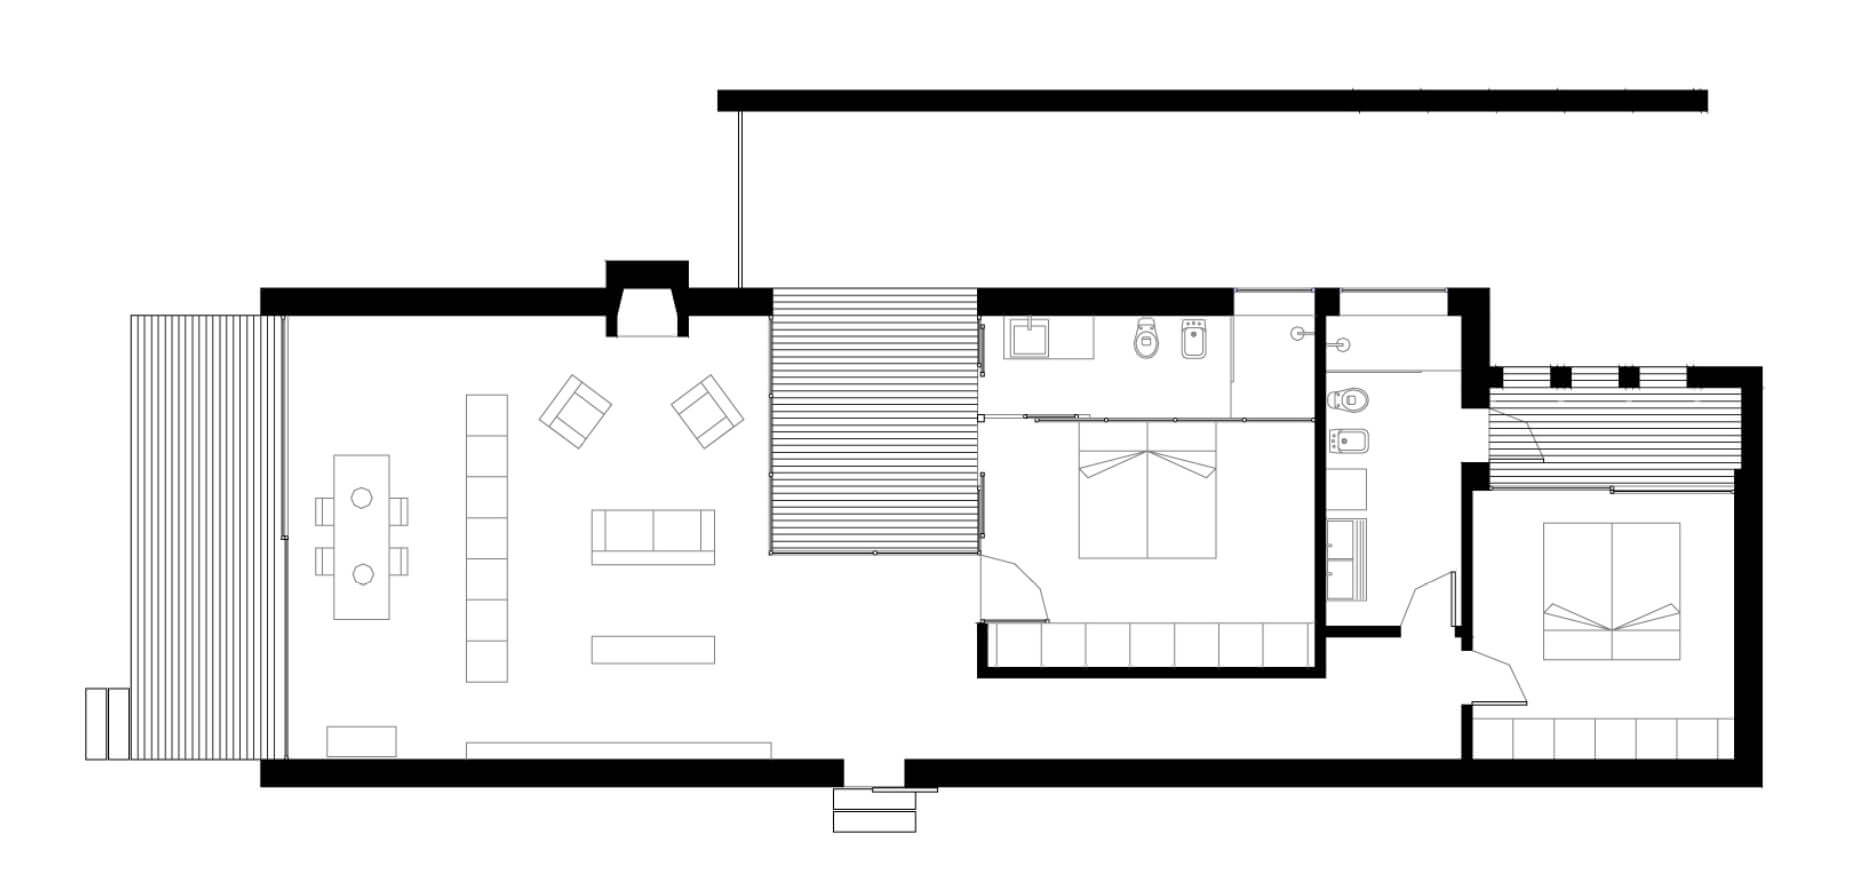 Small two-bedroom house plan